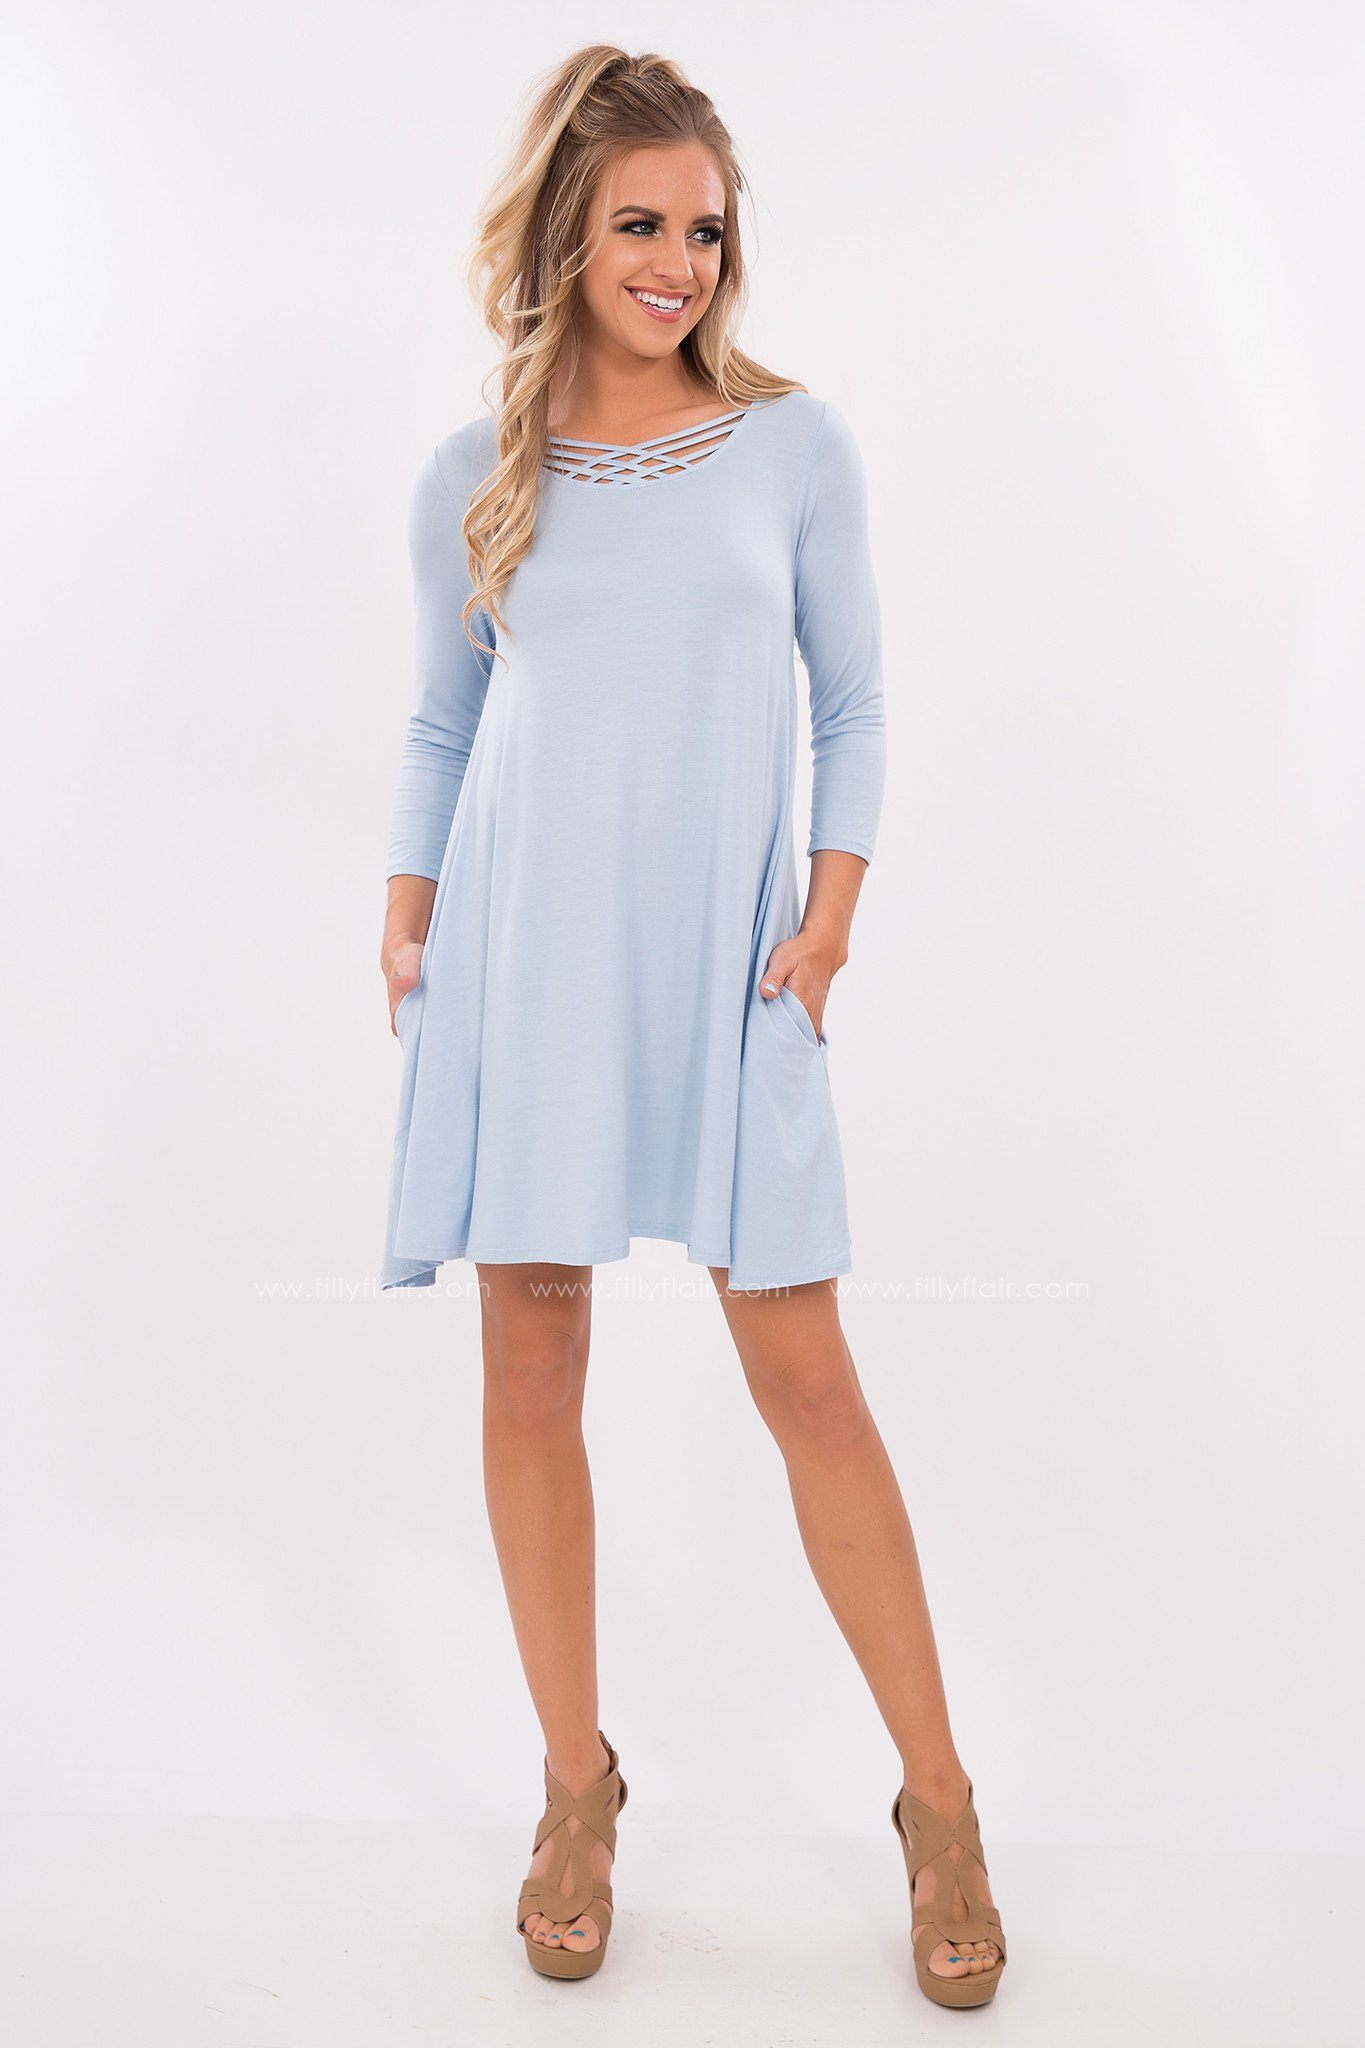 Baby Blue T-Shirt Dress